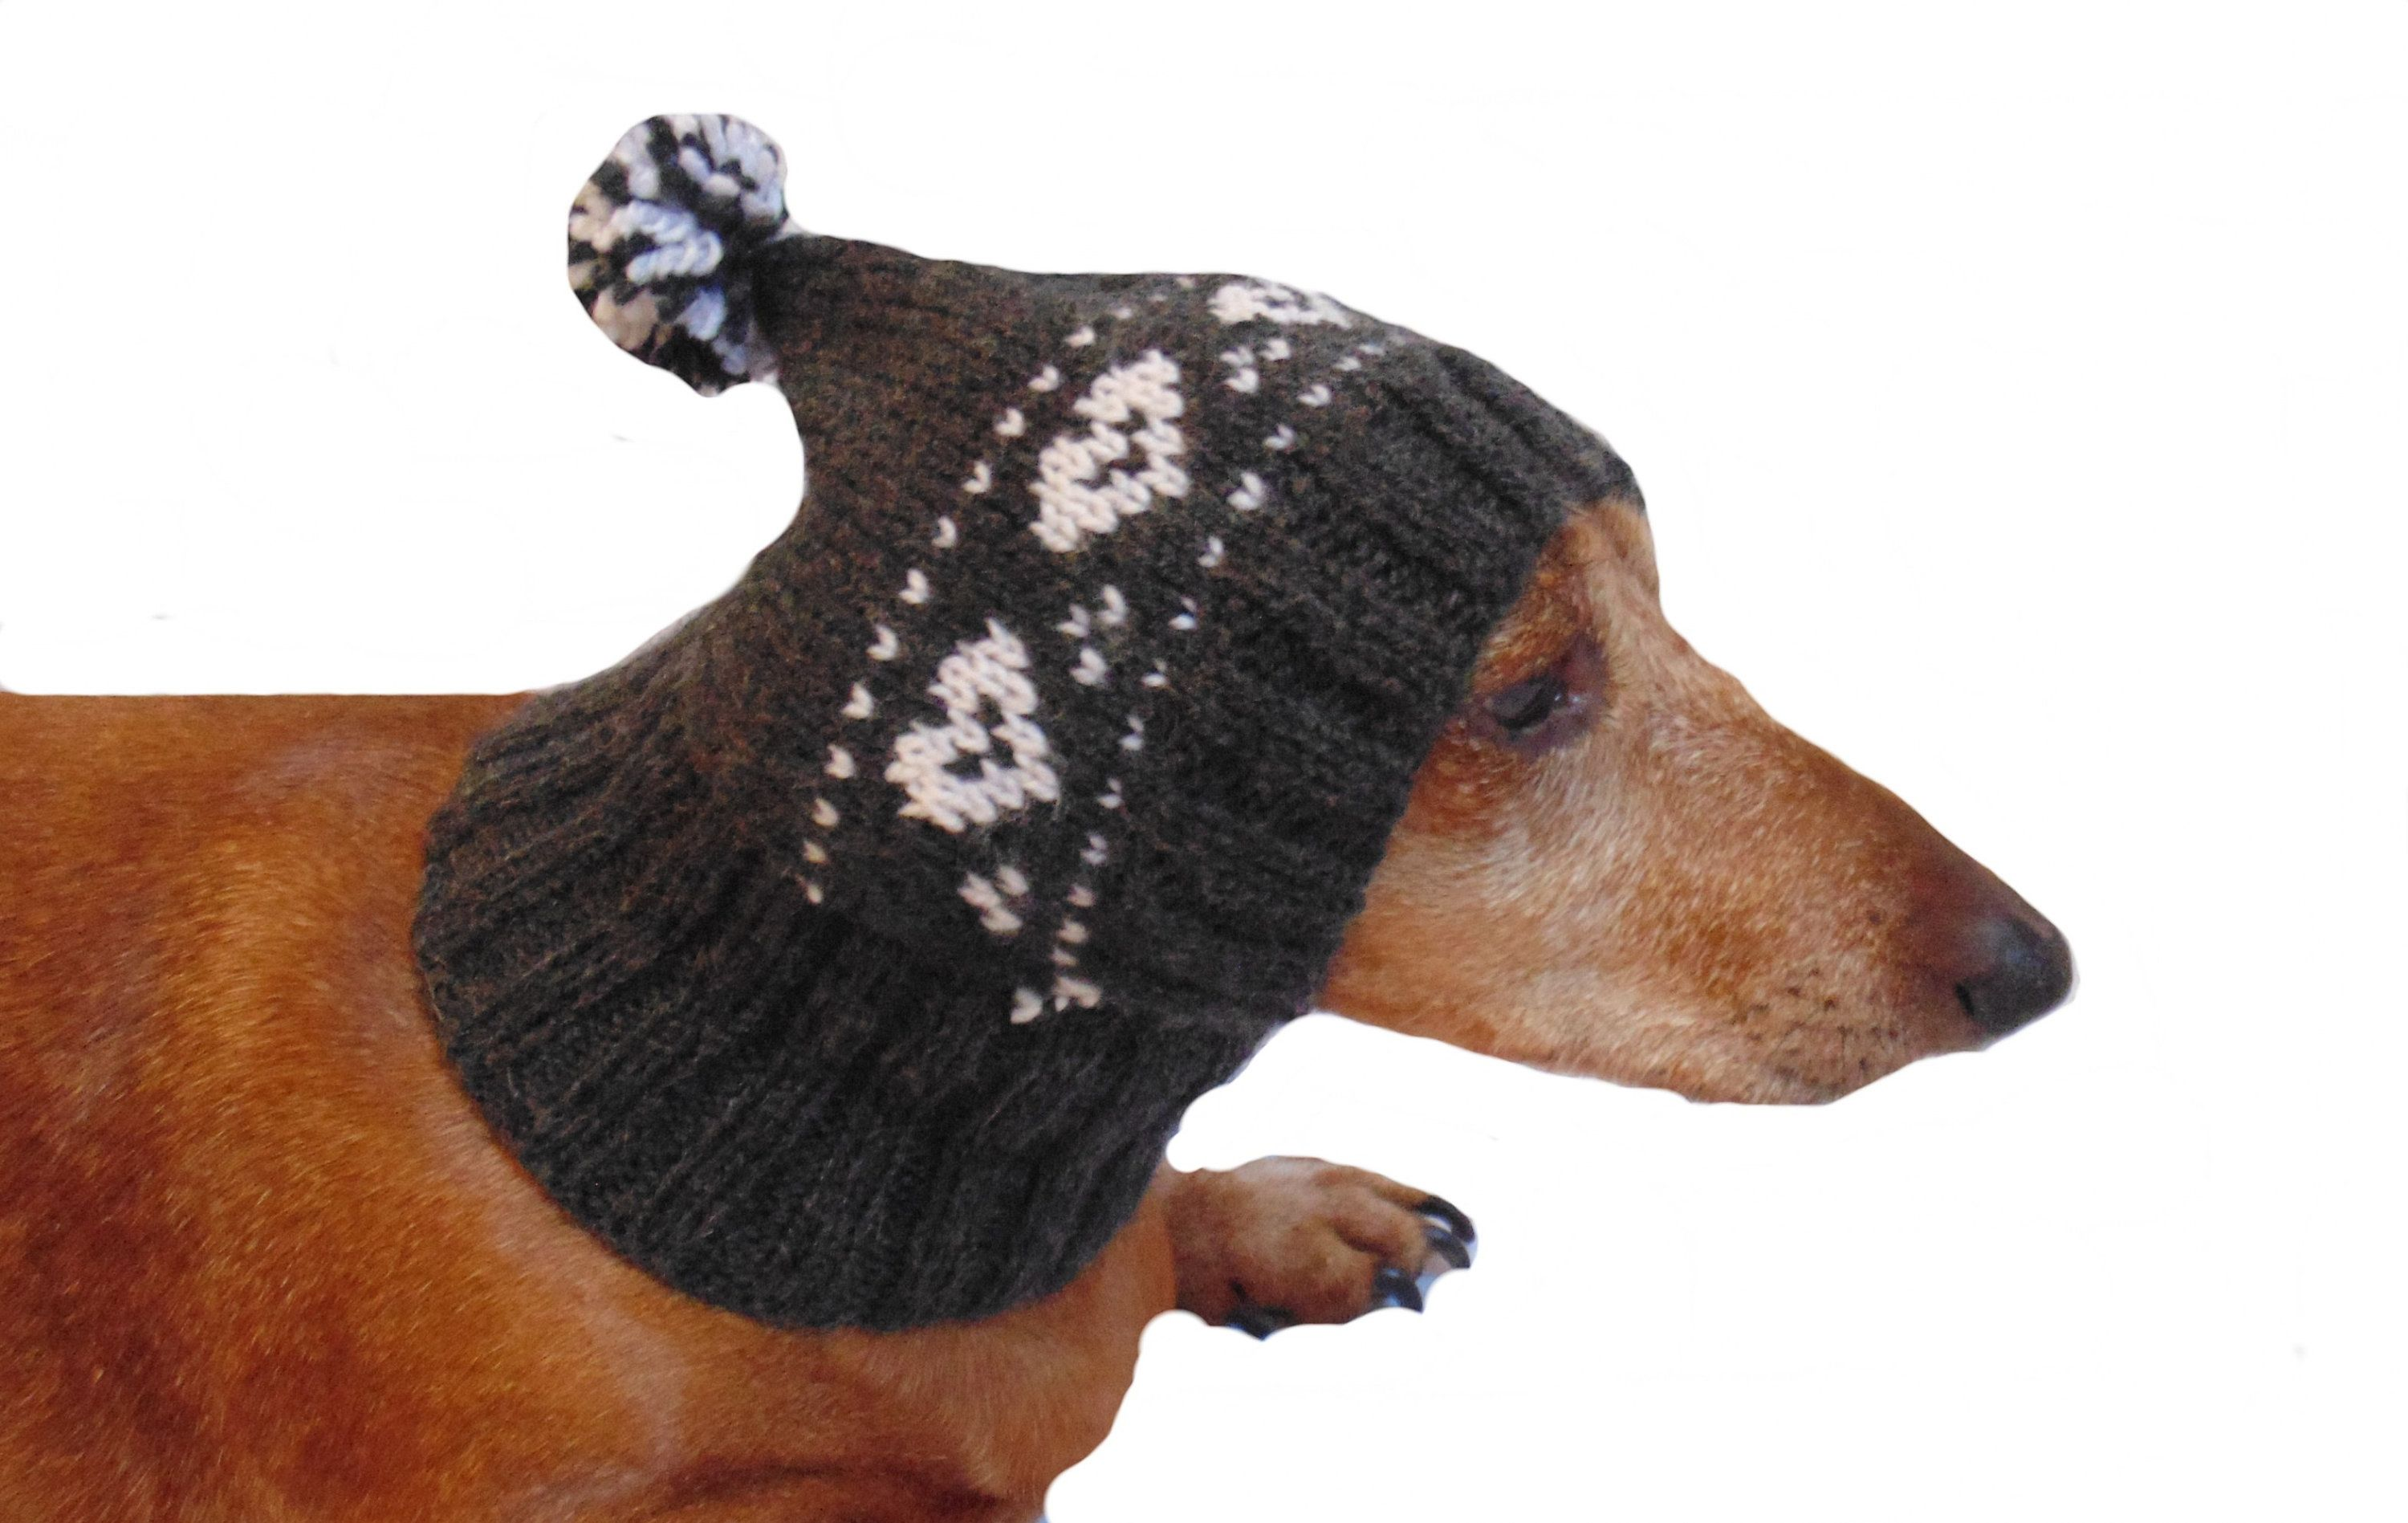 Hat For Dog Open Ears Warm Hat For Dog Or Cat Hat For Etsy Dog Hat Winter Knit Hats Warm Winter Hats